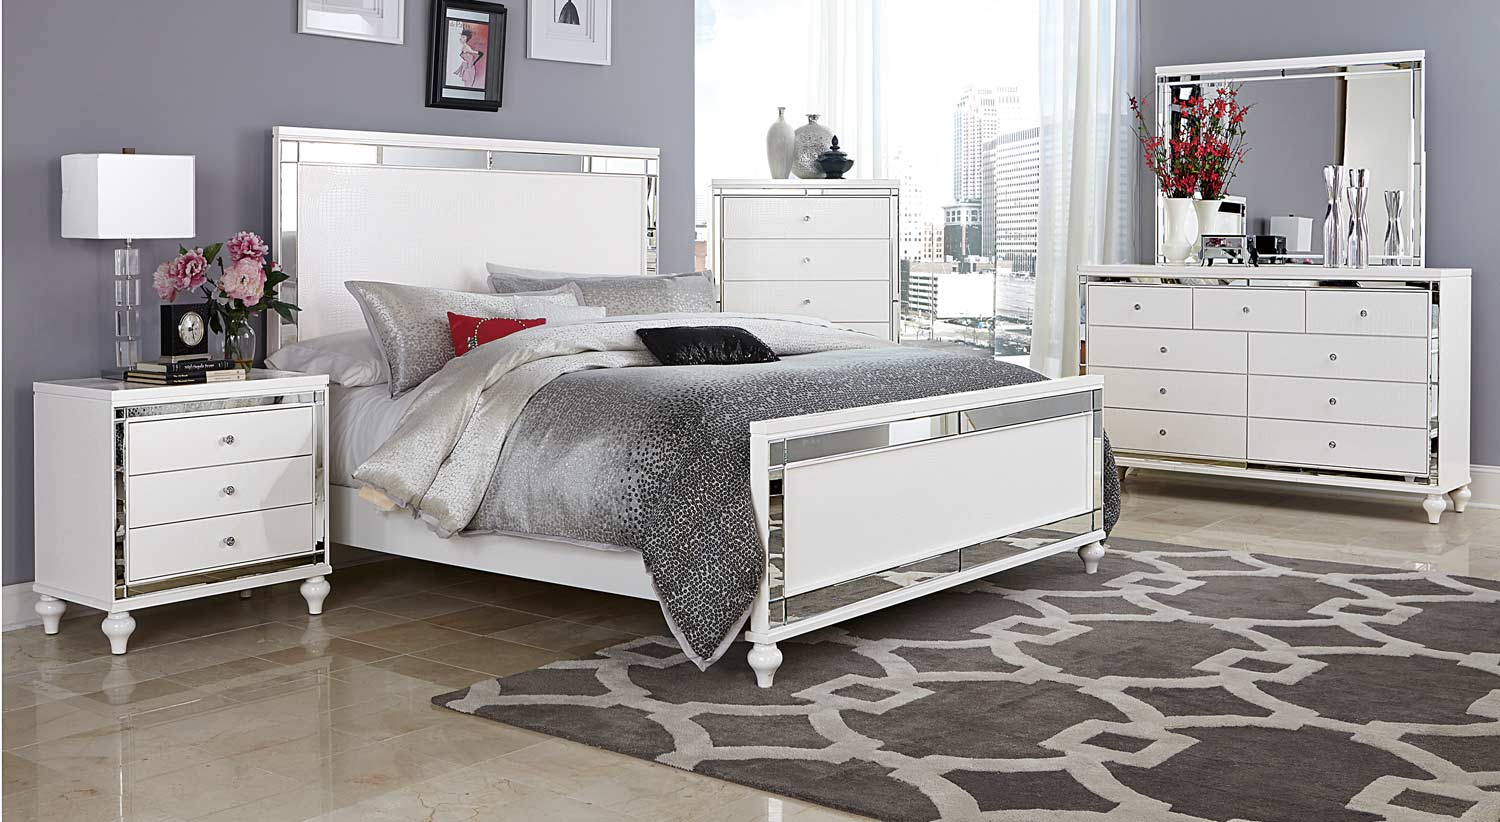 Homelegance Alonza Bedroom Set - White